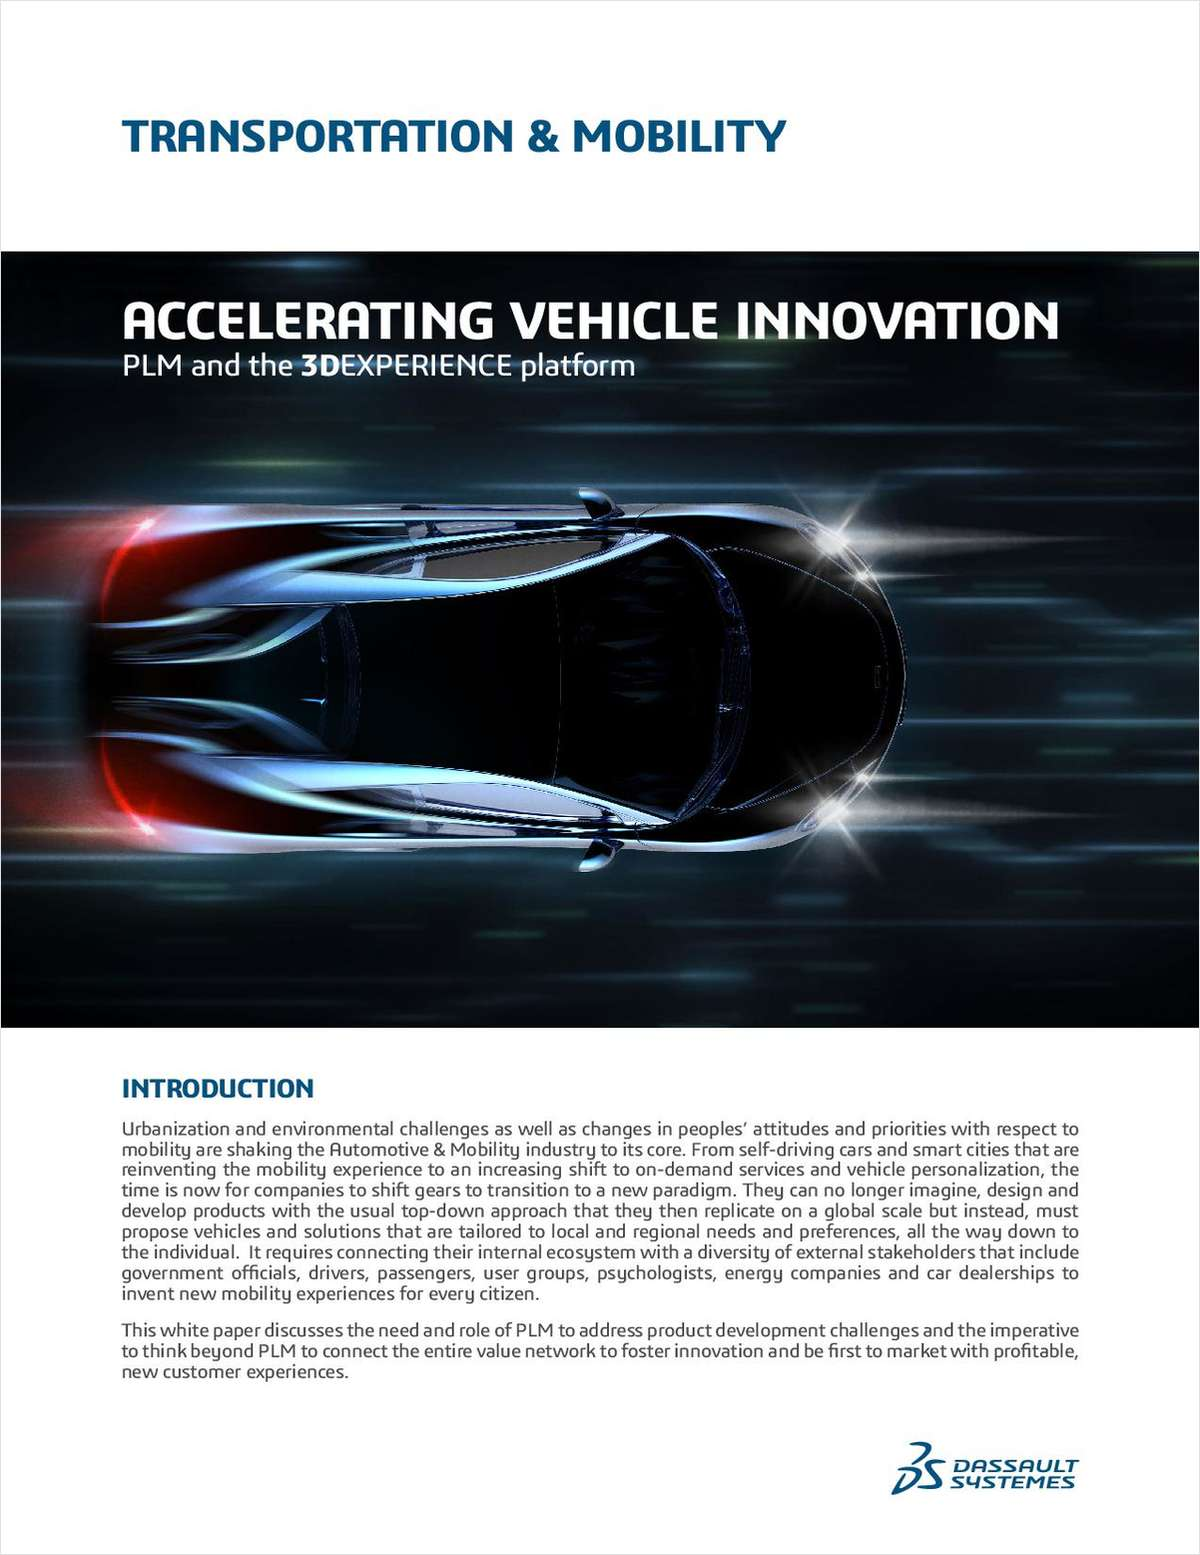 Accelerating Vehicle Innovation: PLM and the 3DEXPERIENCE Platform